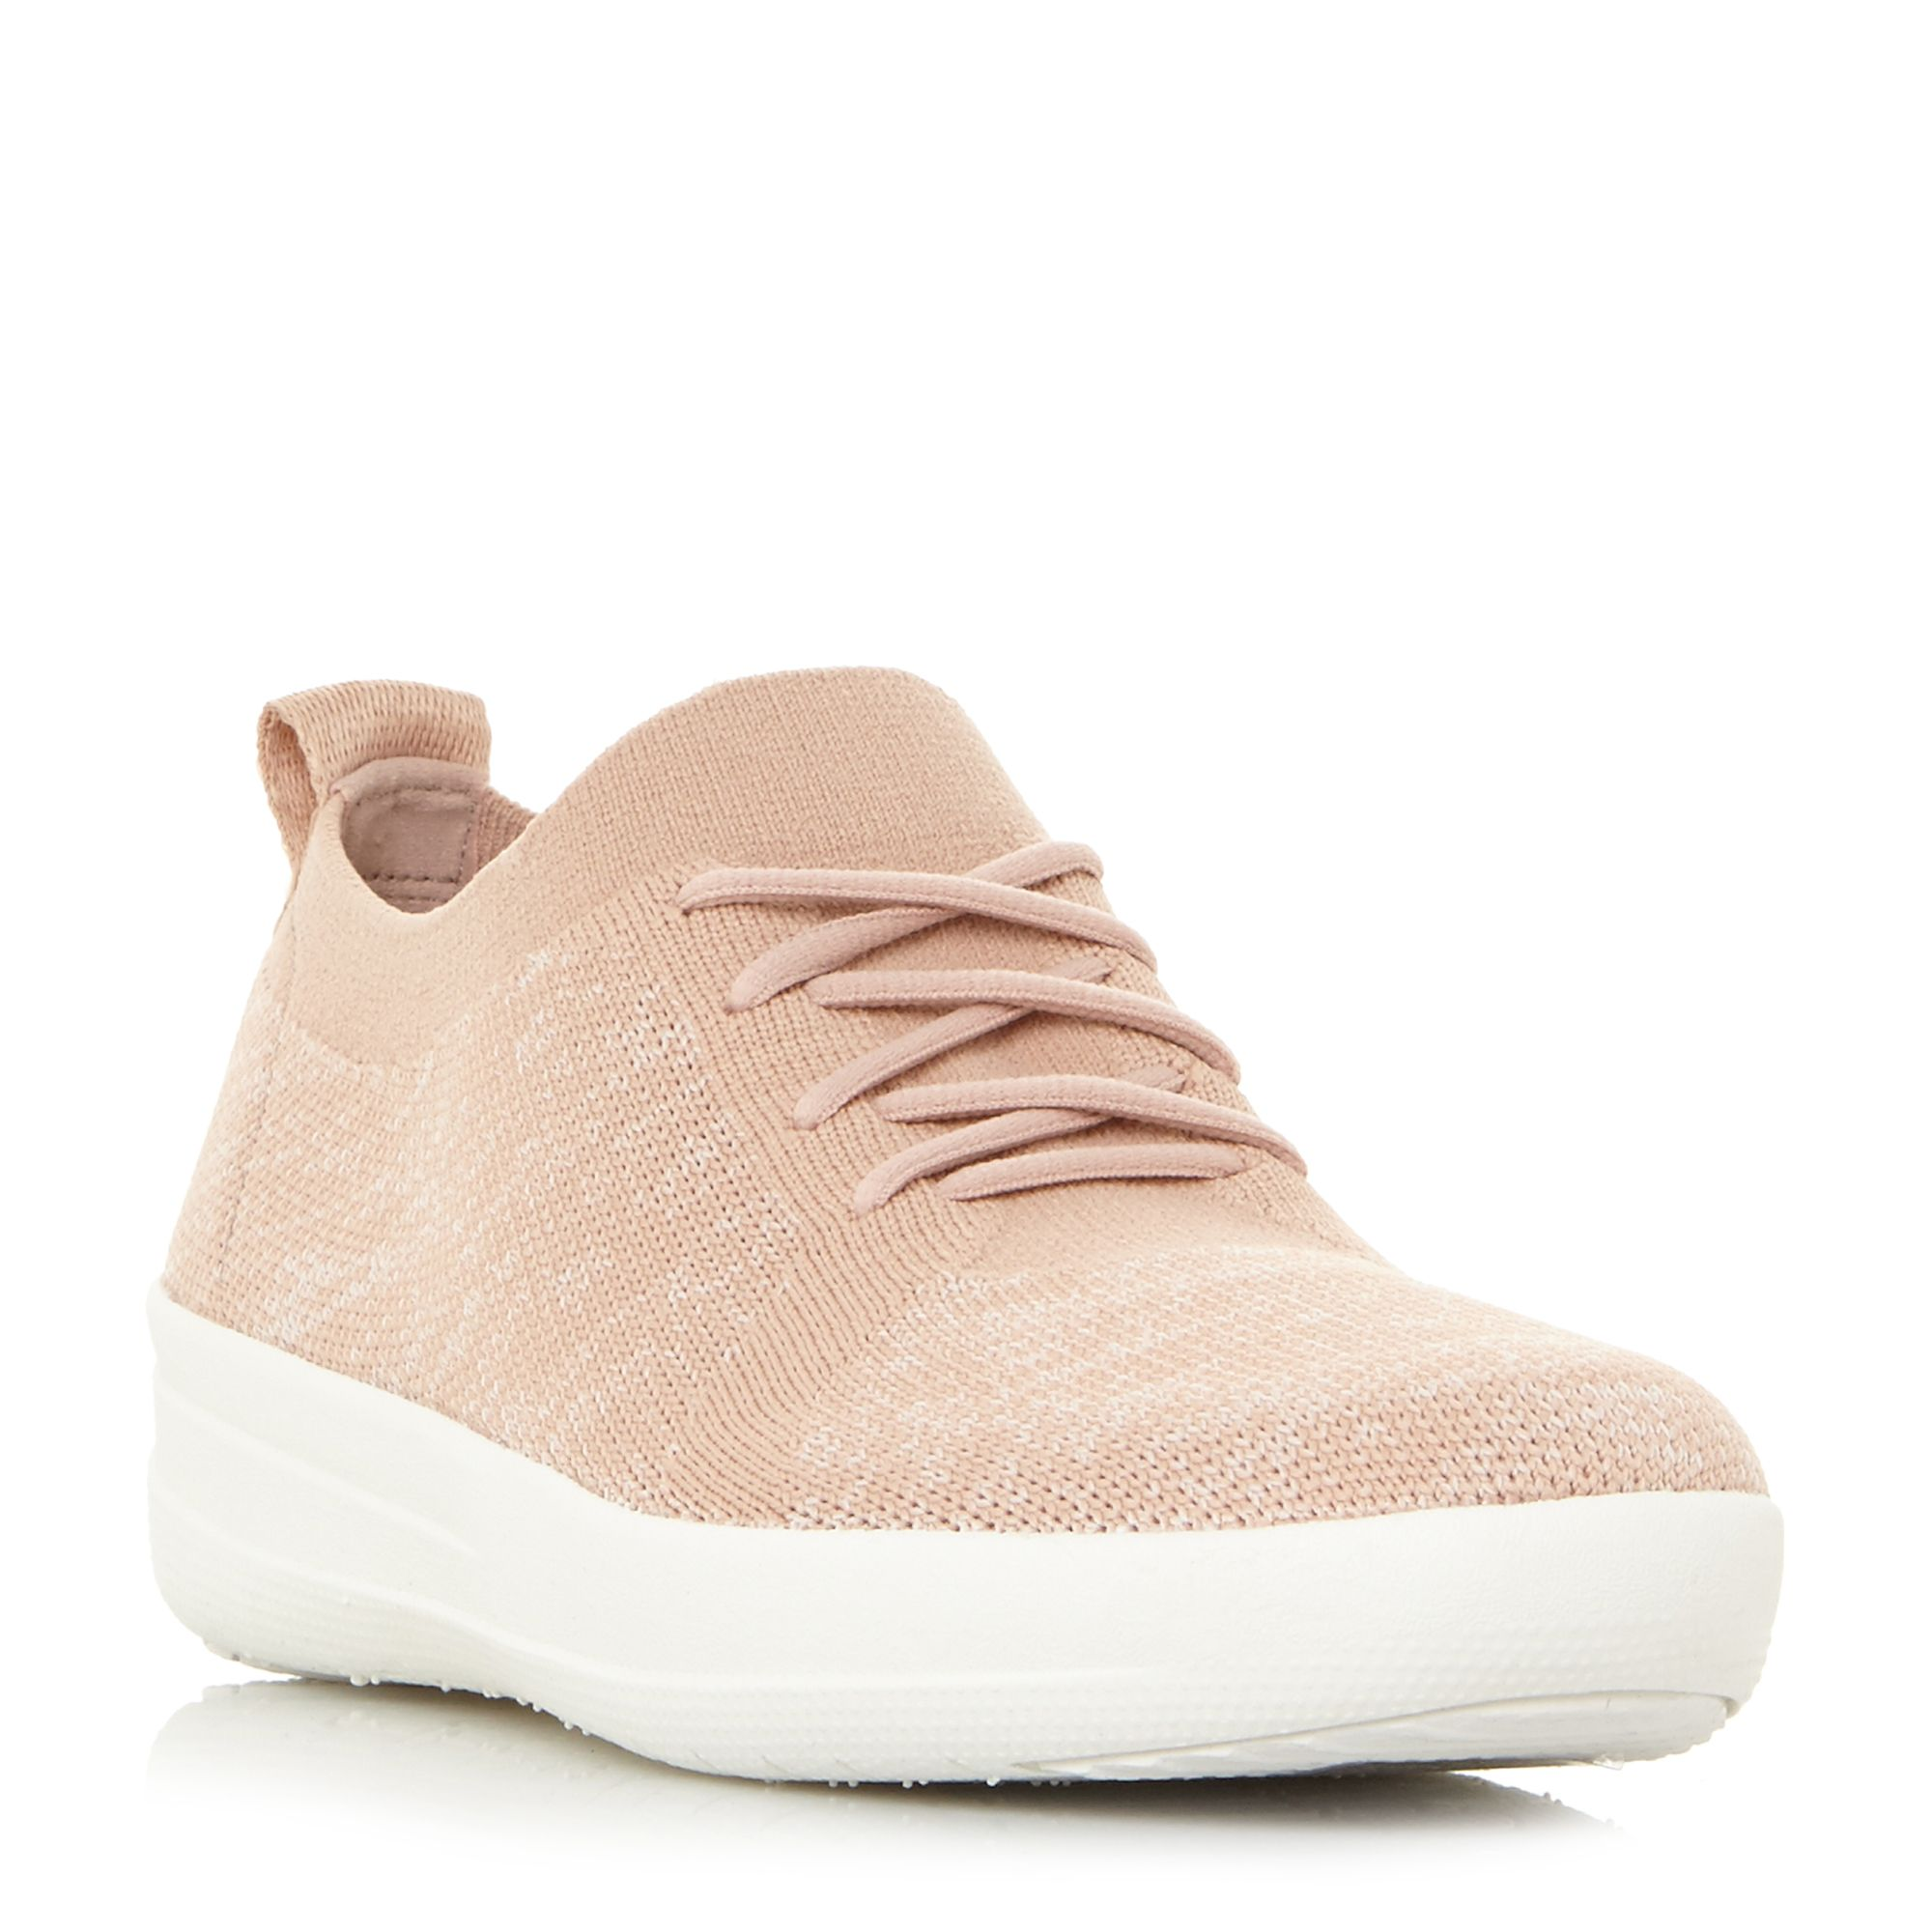 FitFlop F-Sporty Lace Up Trainers, Pink